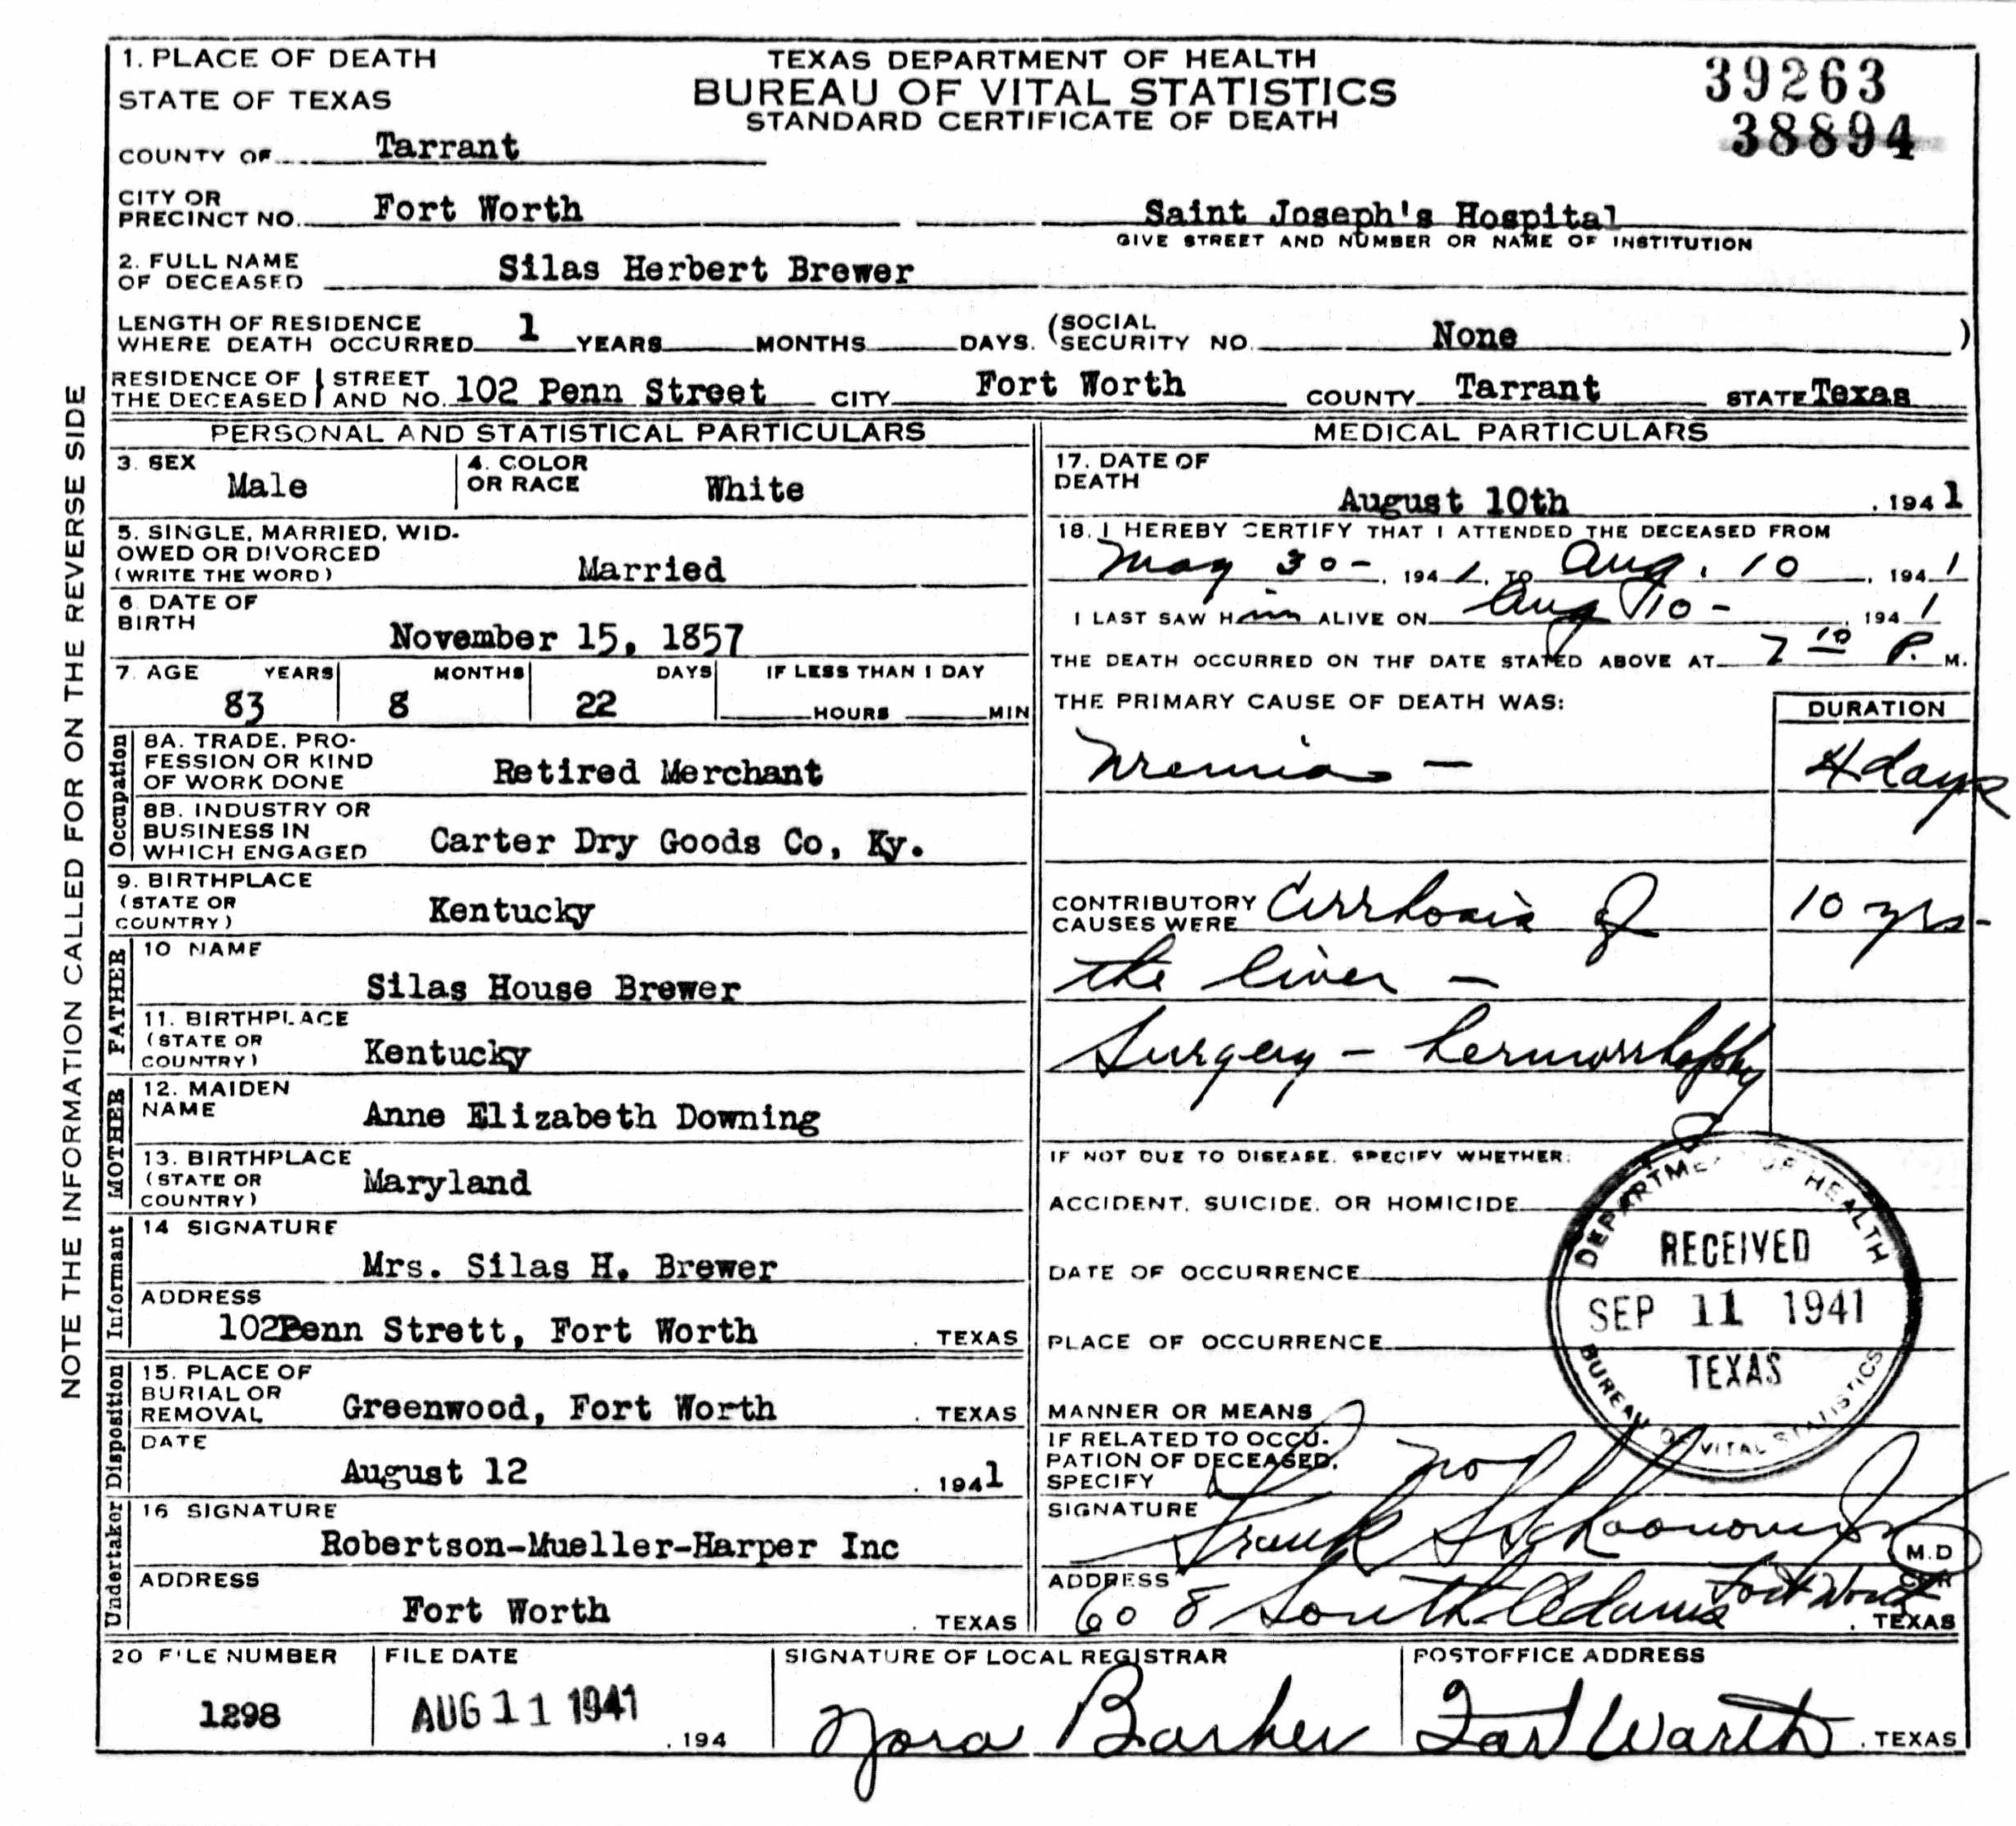 Death certificates br texas death certificate 39263 1betcityfo Images